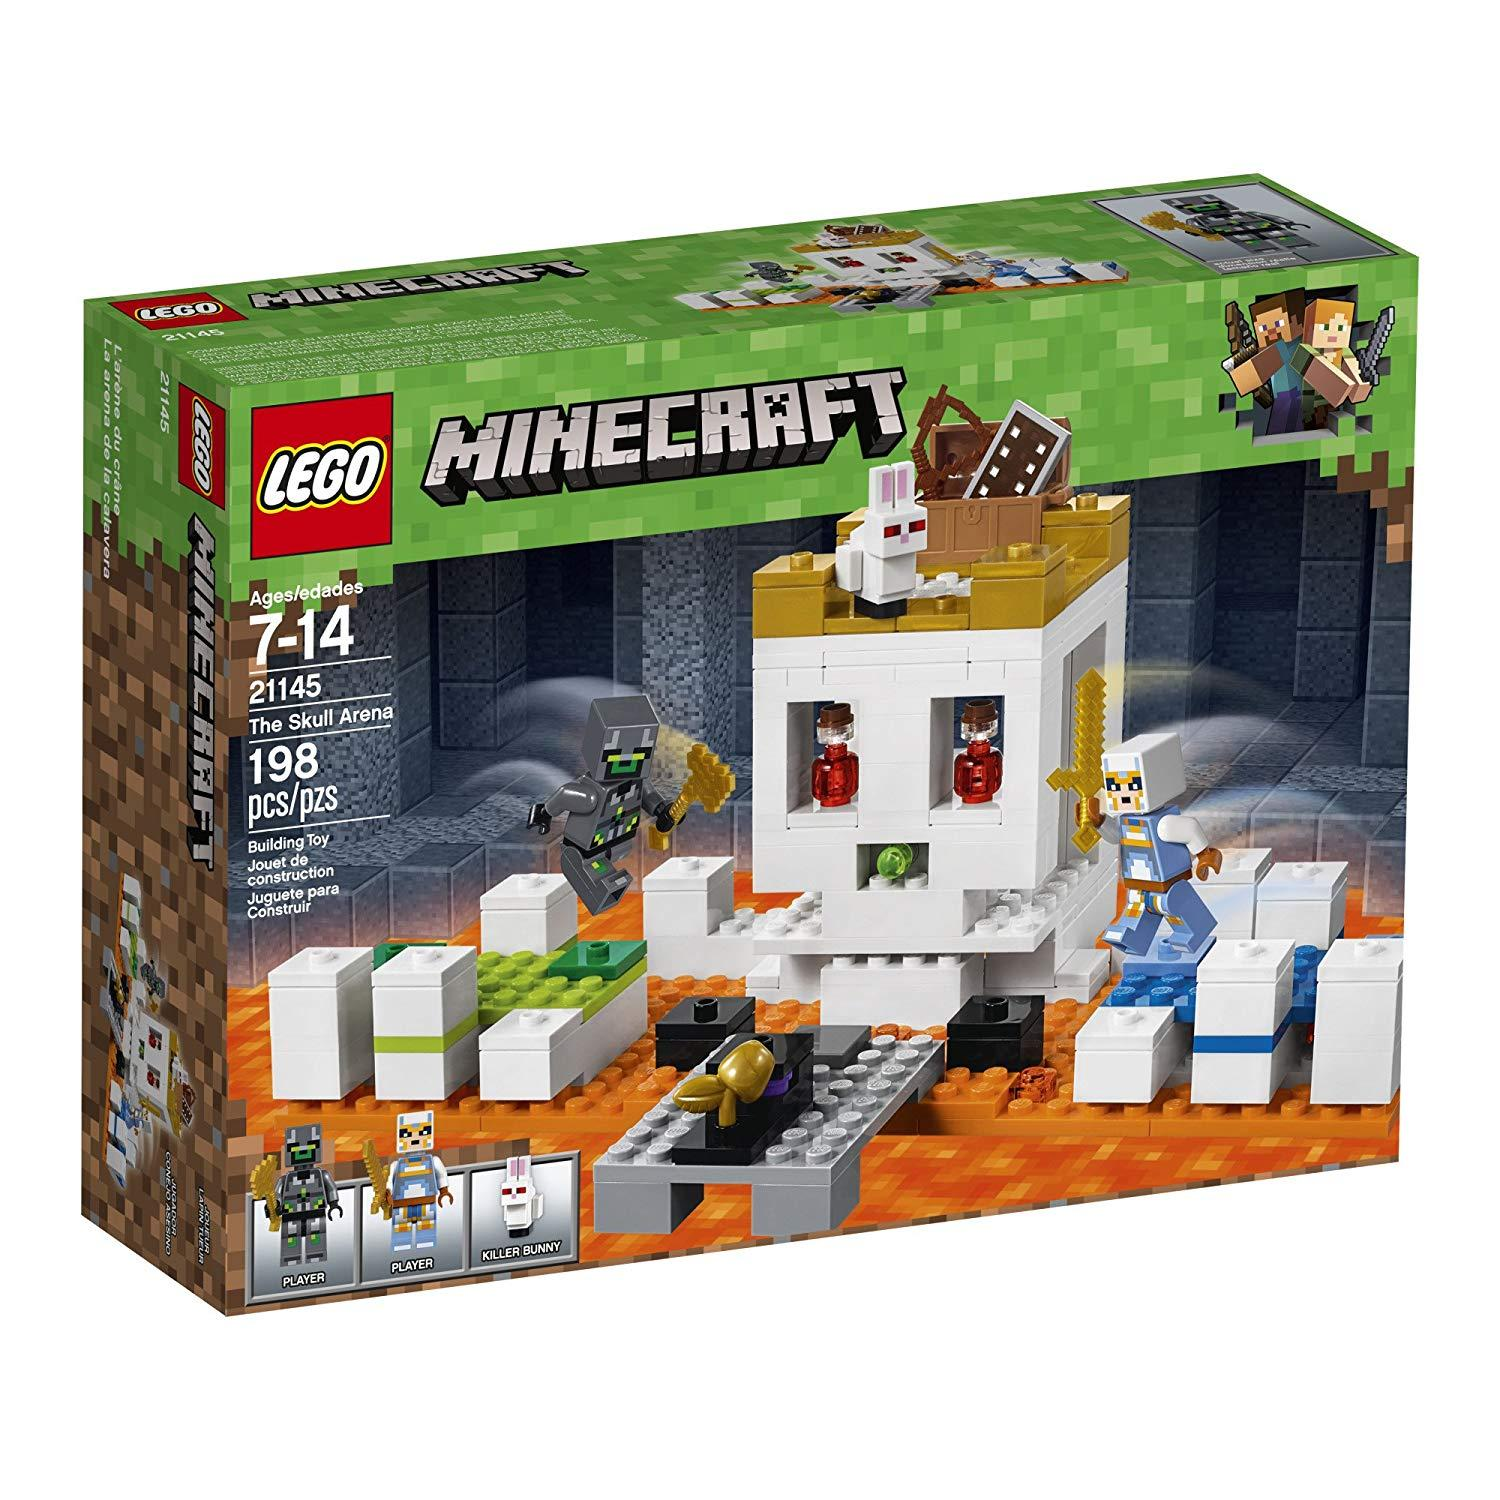 Lego Minecraft The Skull Arena (21145)